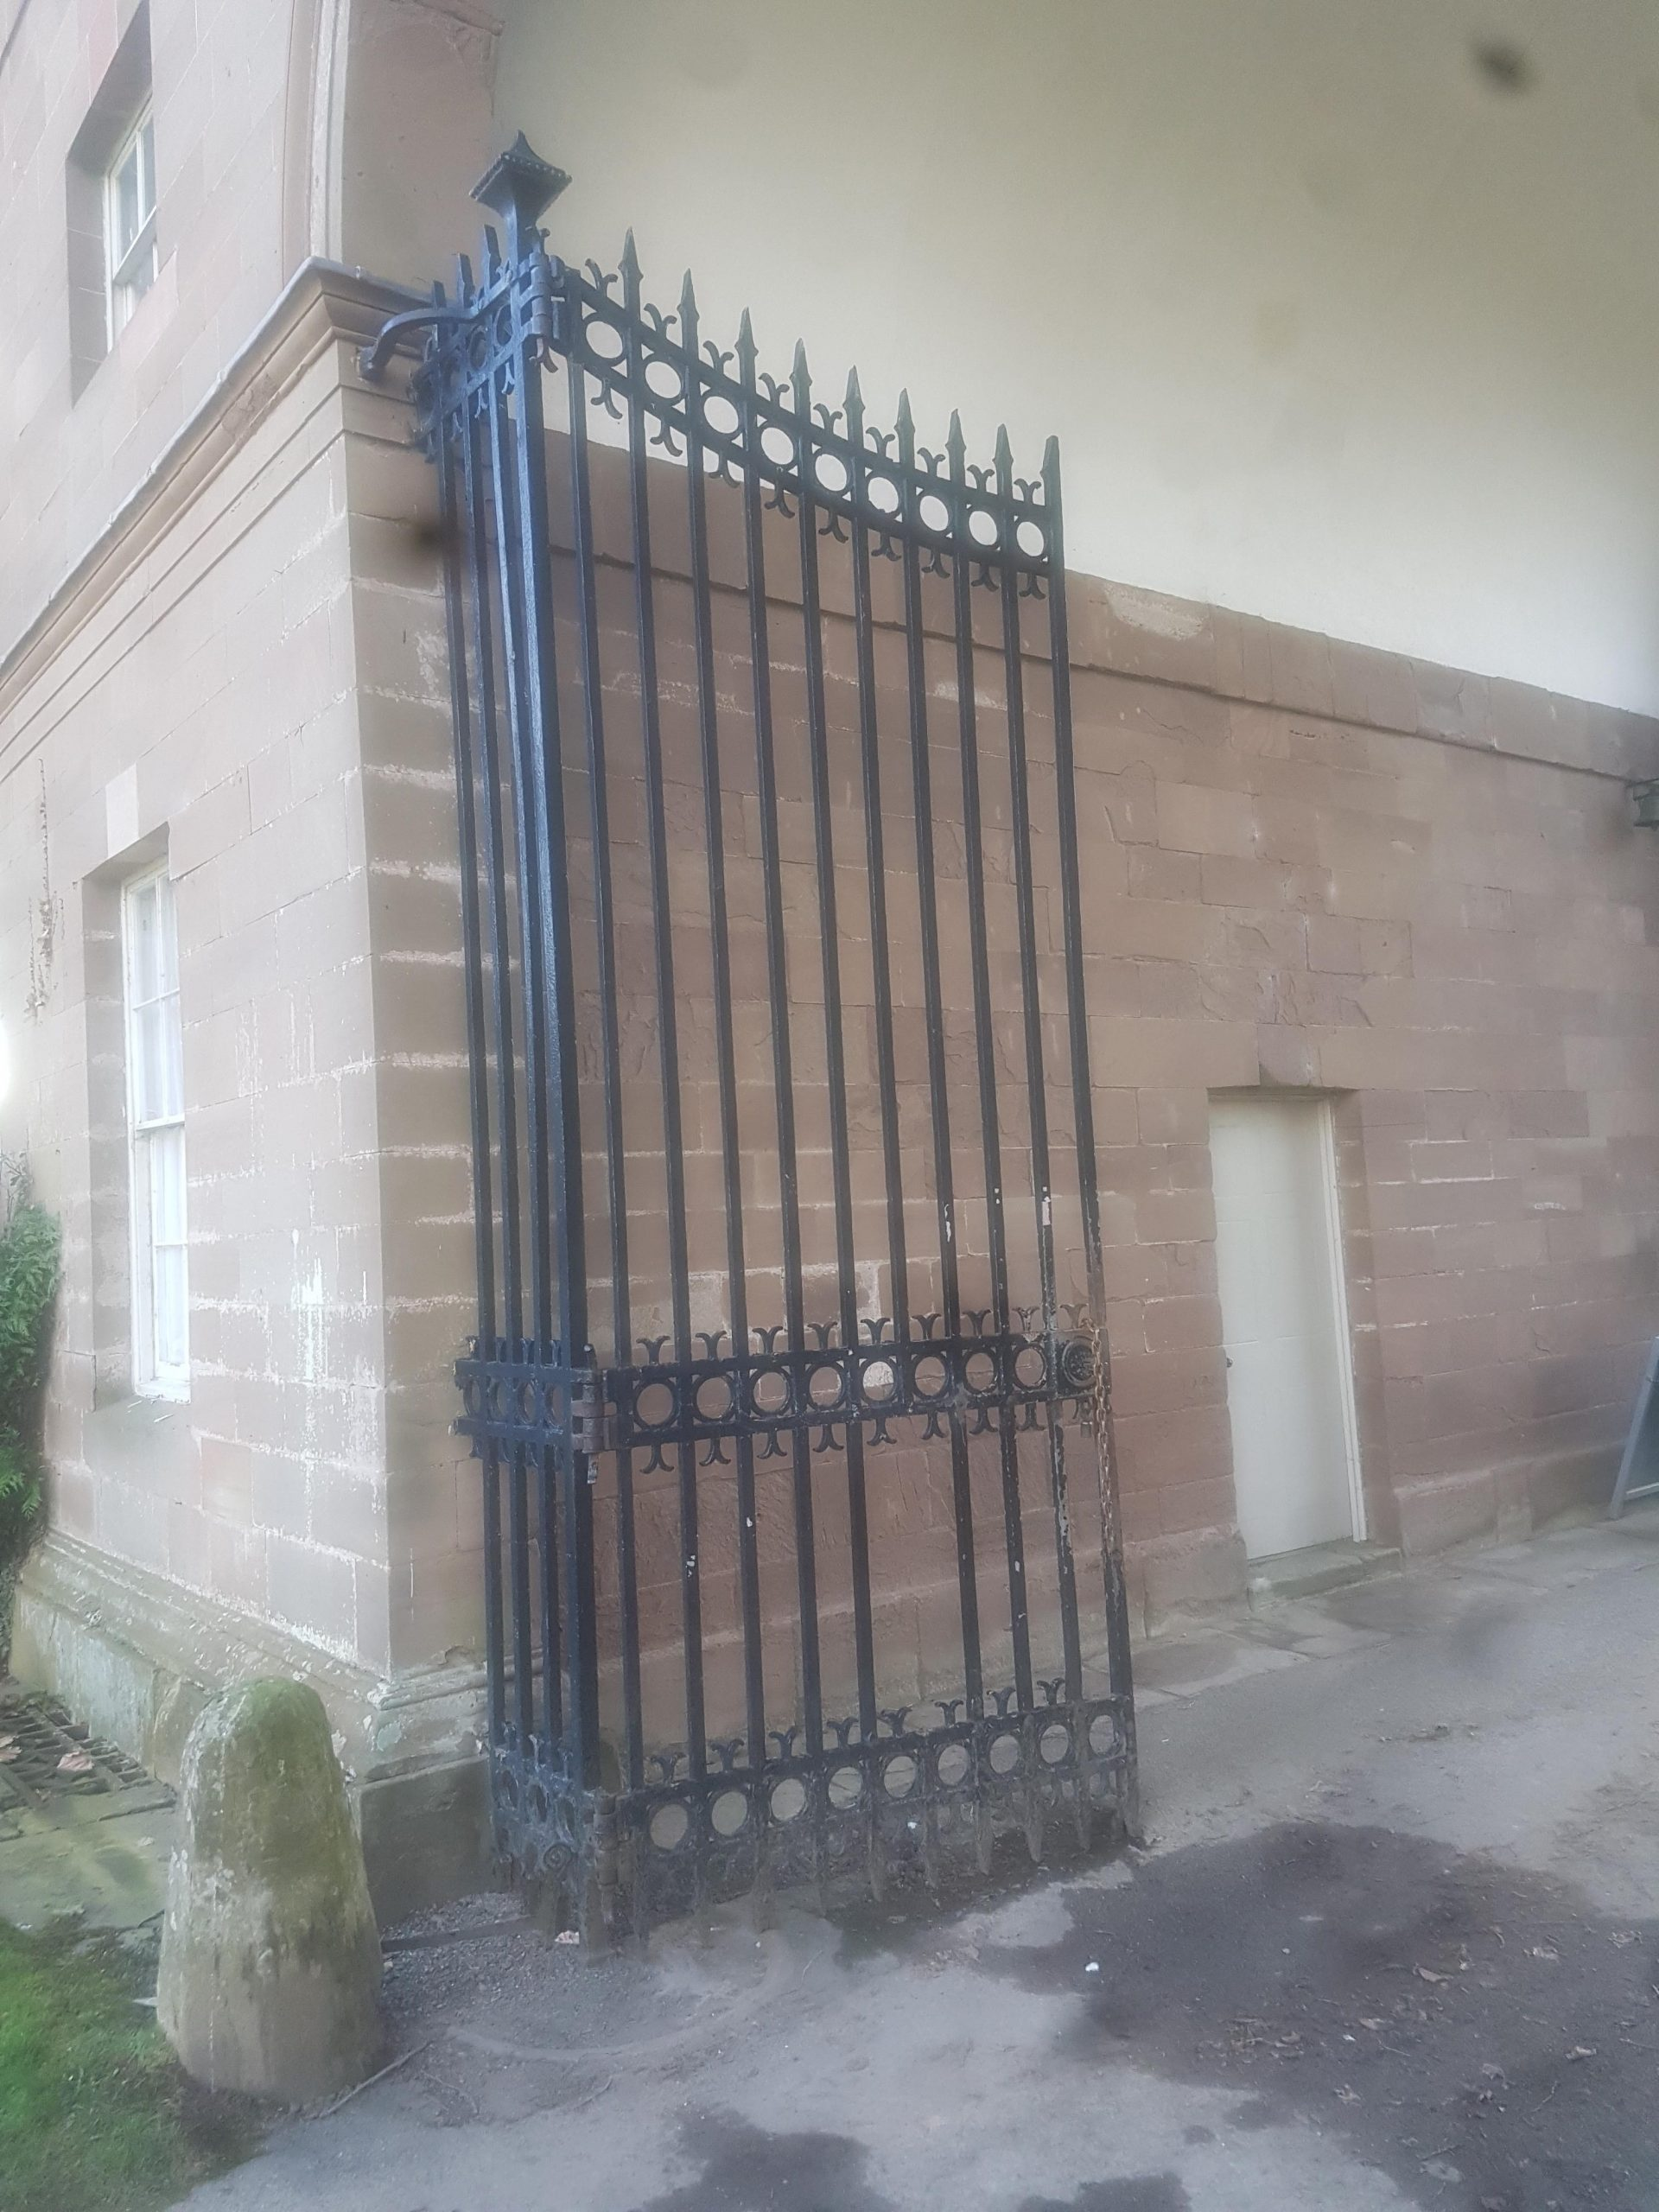 Stately home heritage site in need of cast iron welding repairs on cast iron gates